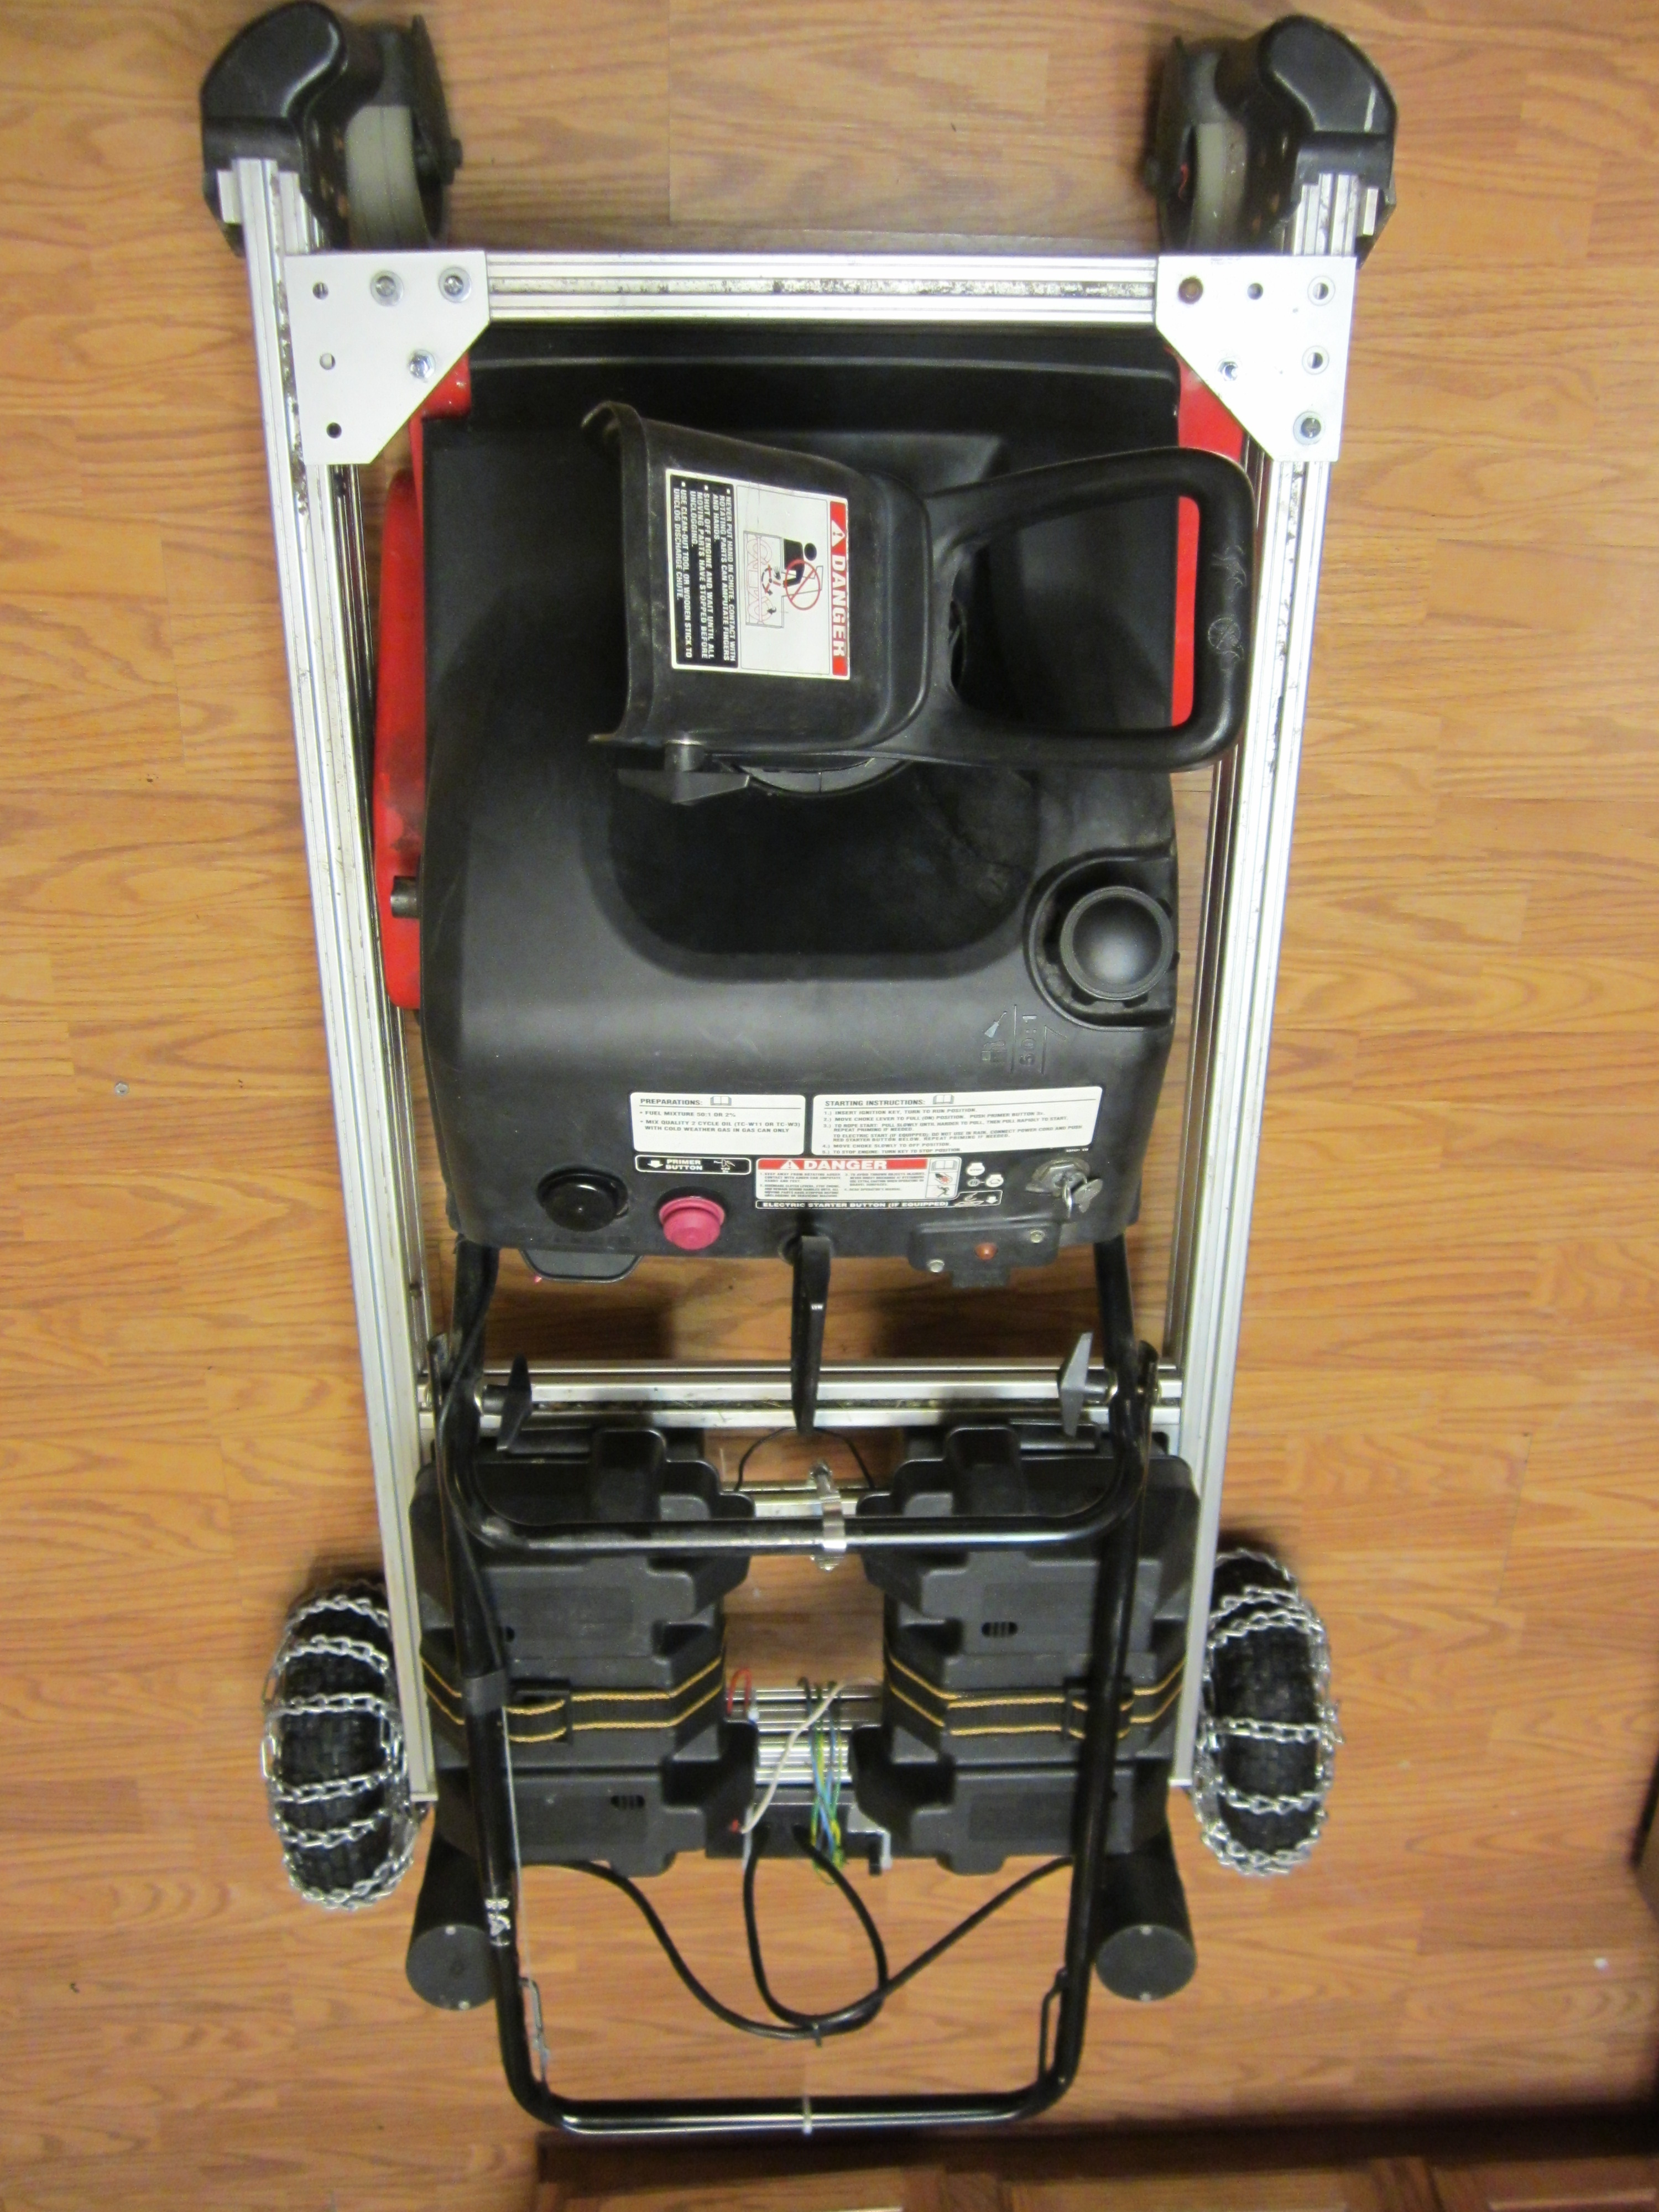 Remote Control Snowblower